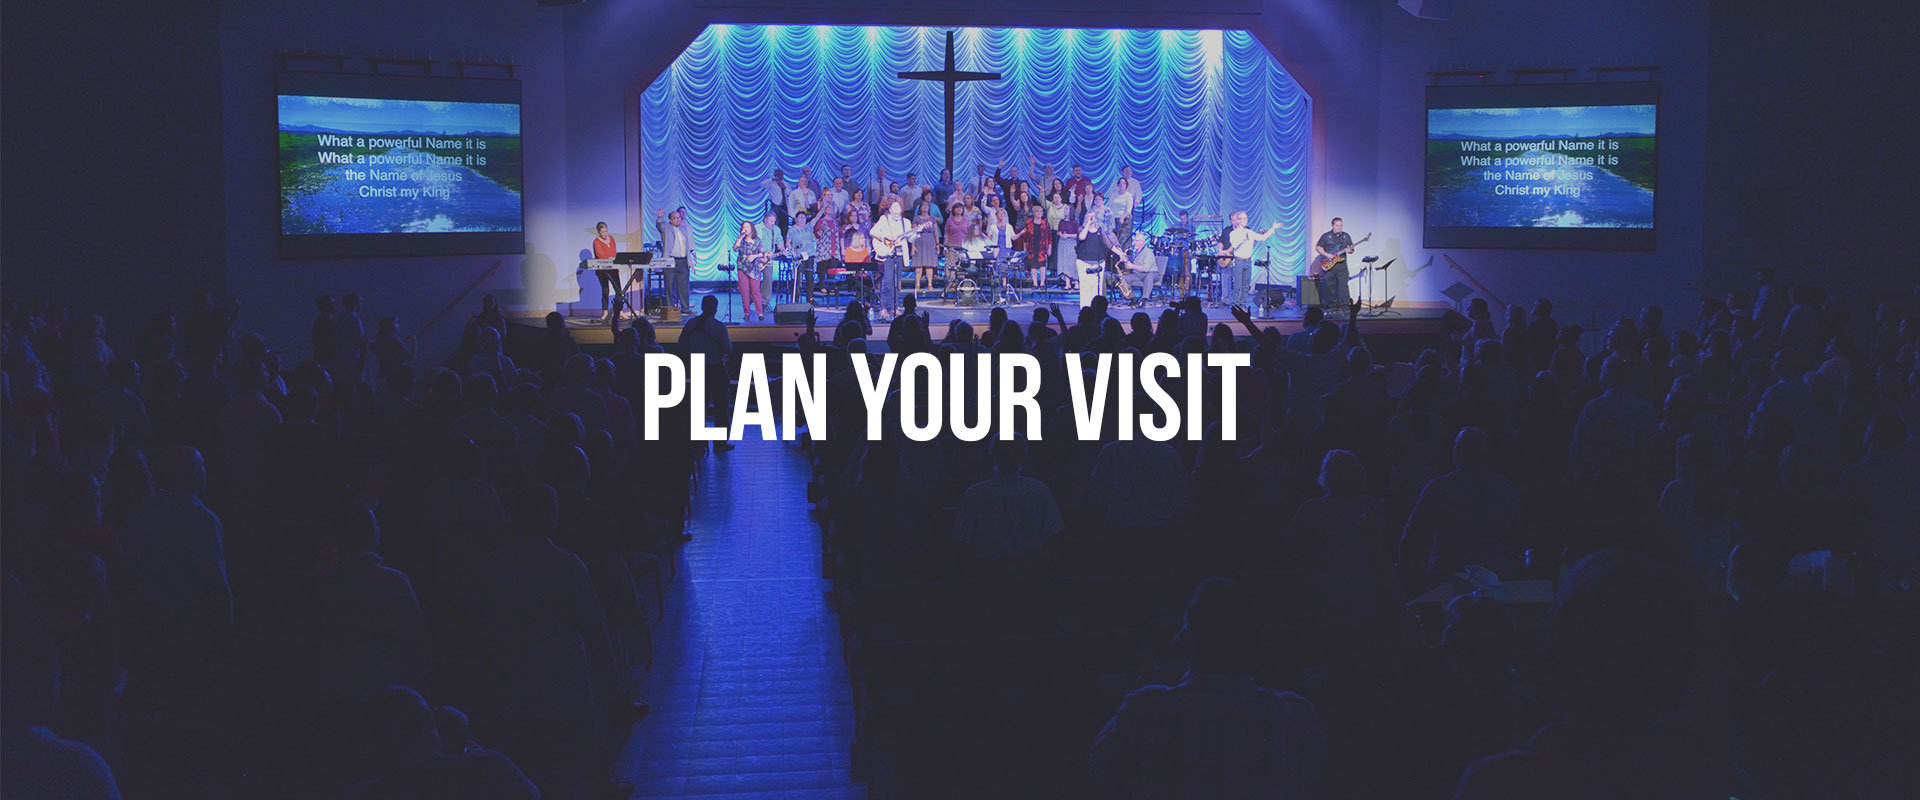 plan-your-visit-header-new